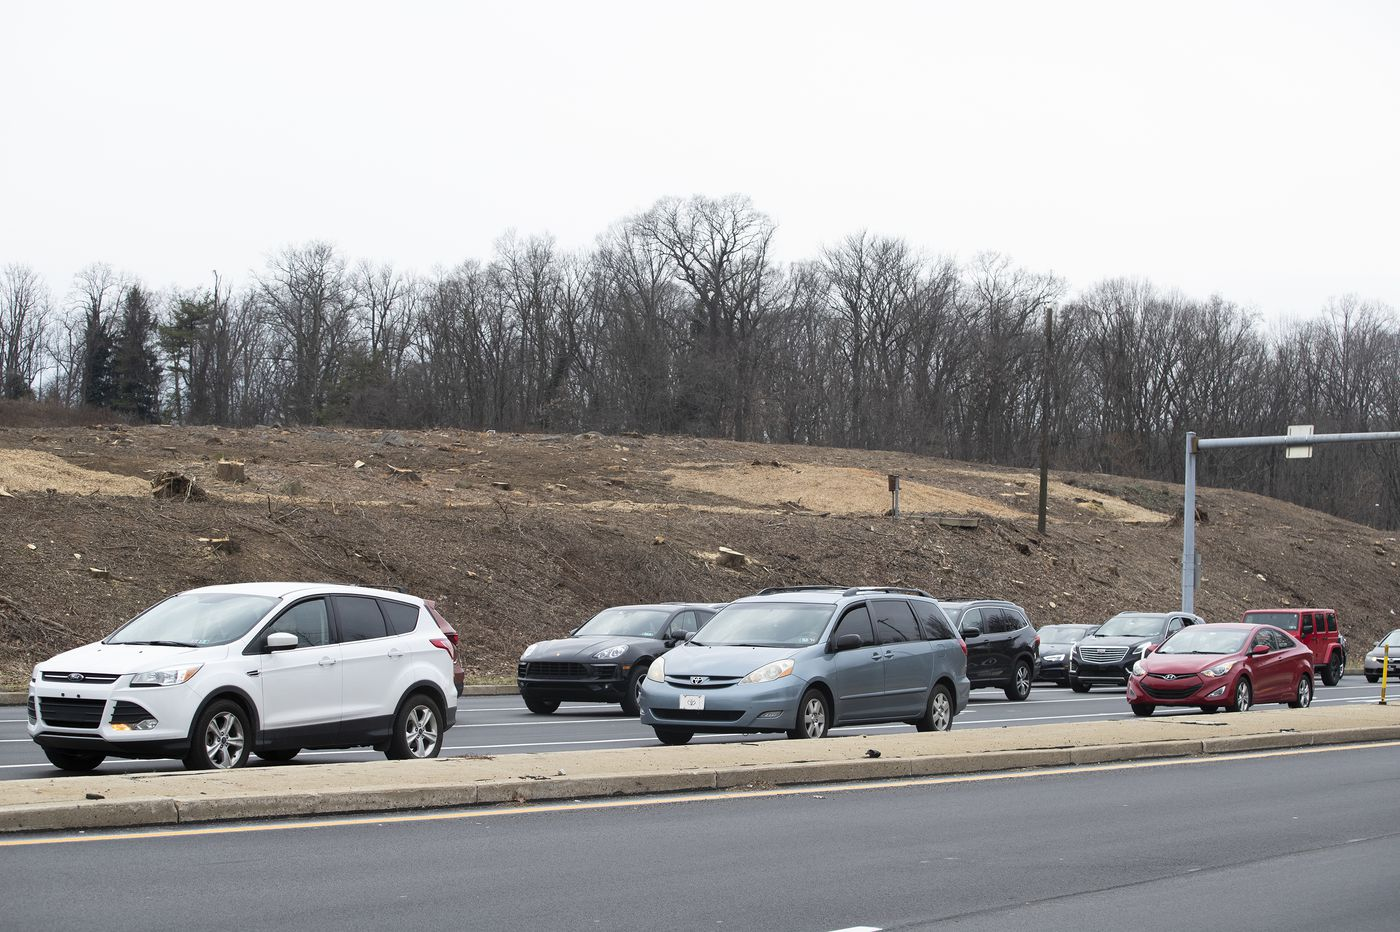 Radnor Hillside Near 476 Interchange Cleared of Trees, Upsetting Some Residents